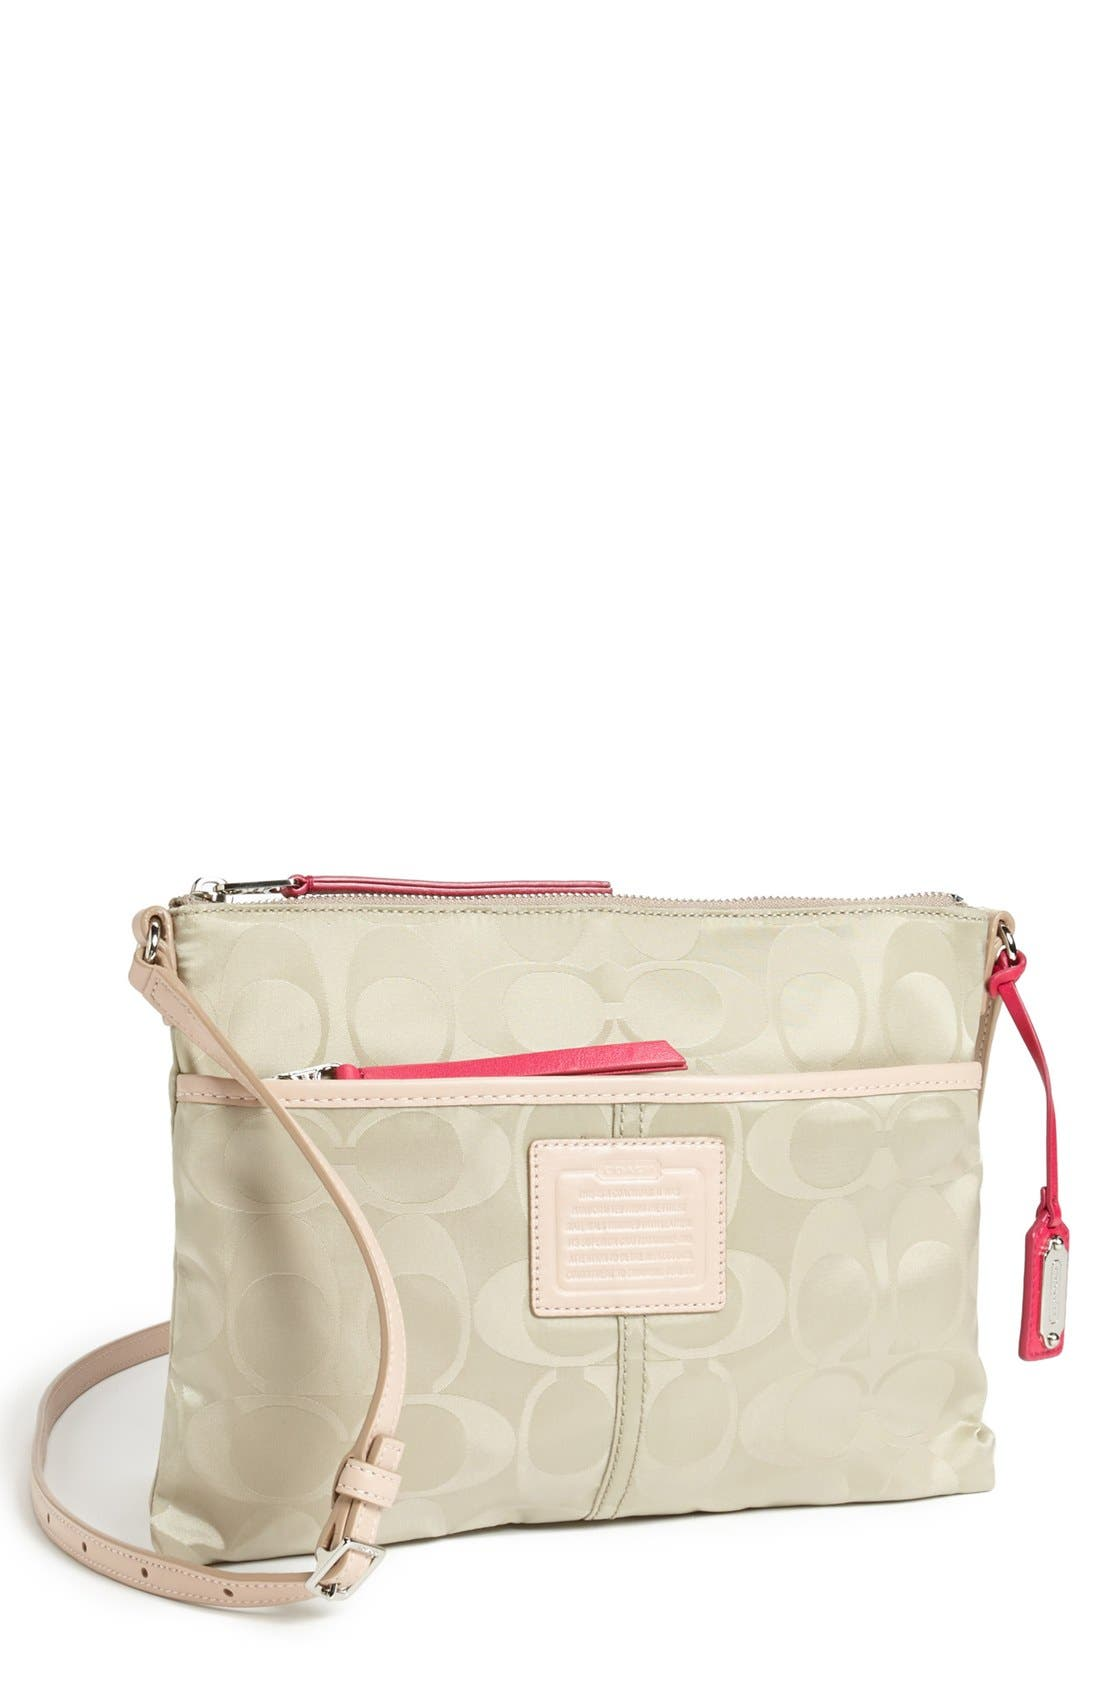 Main Image - COACH 'Legacy - Hippie' Nylon Crossbody Bag